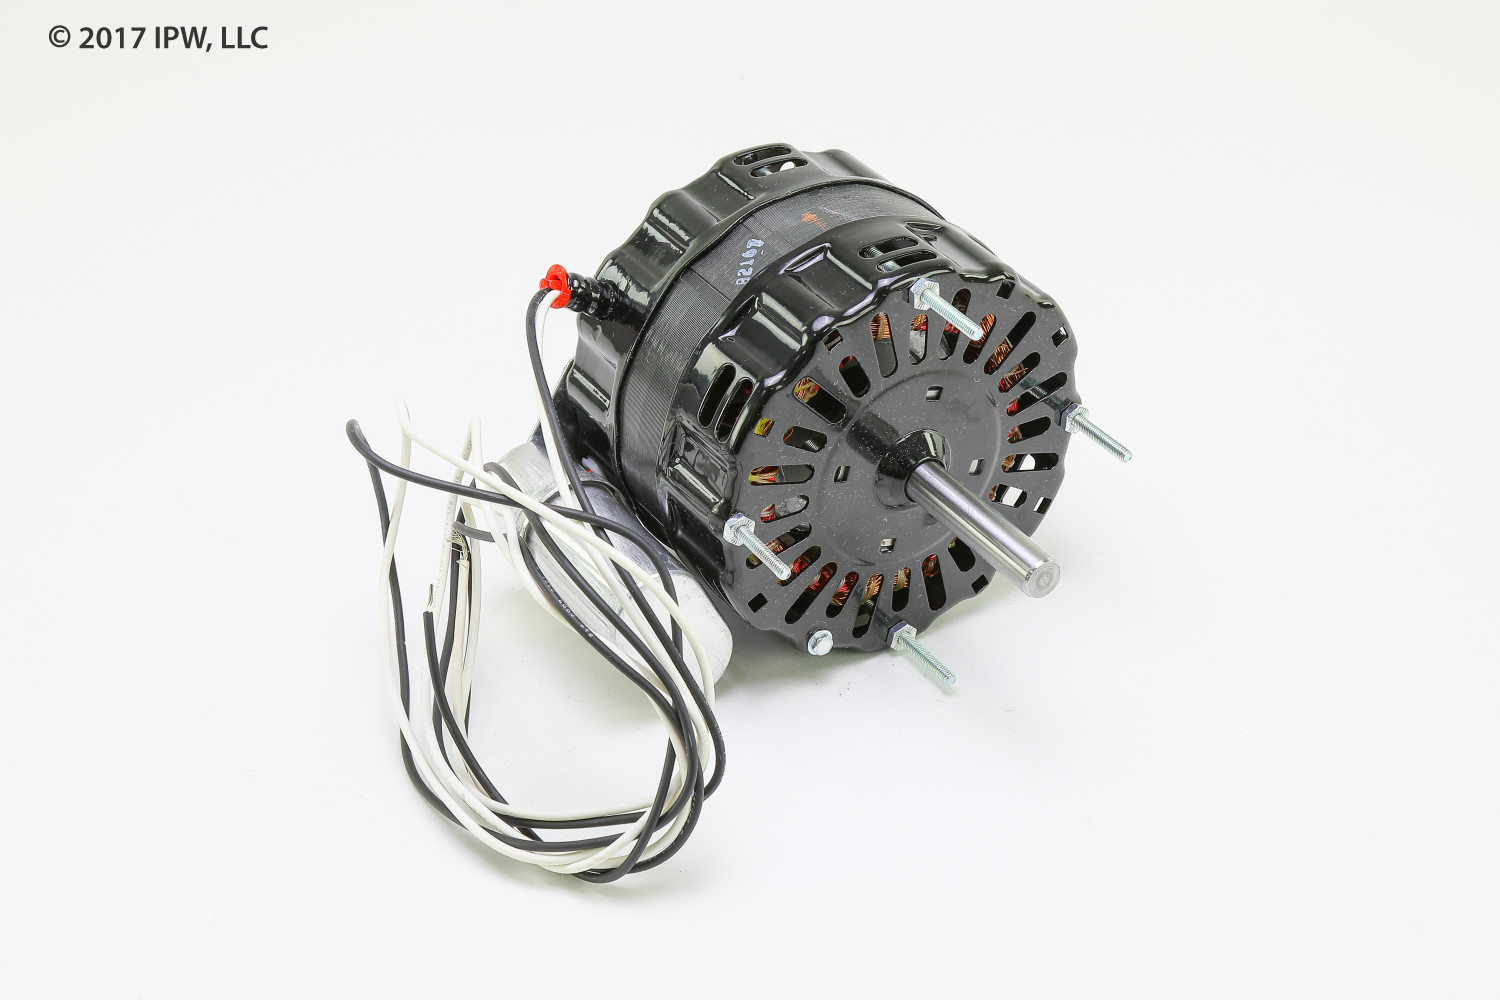 Sterling HVAC 11J31R04093-002 ODP Fan Mtr 1/4hp 120v 1050rpm